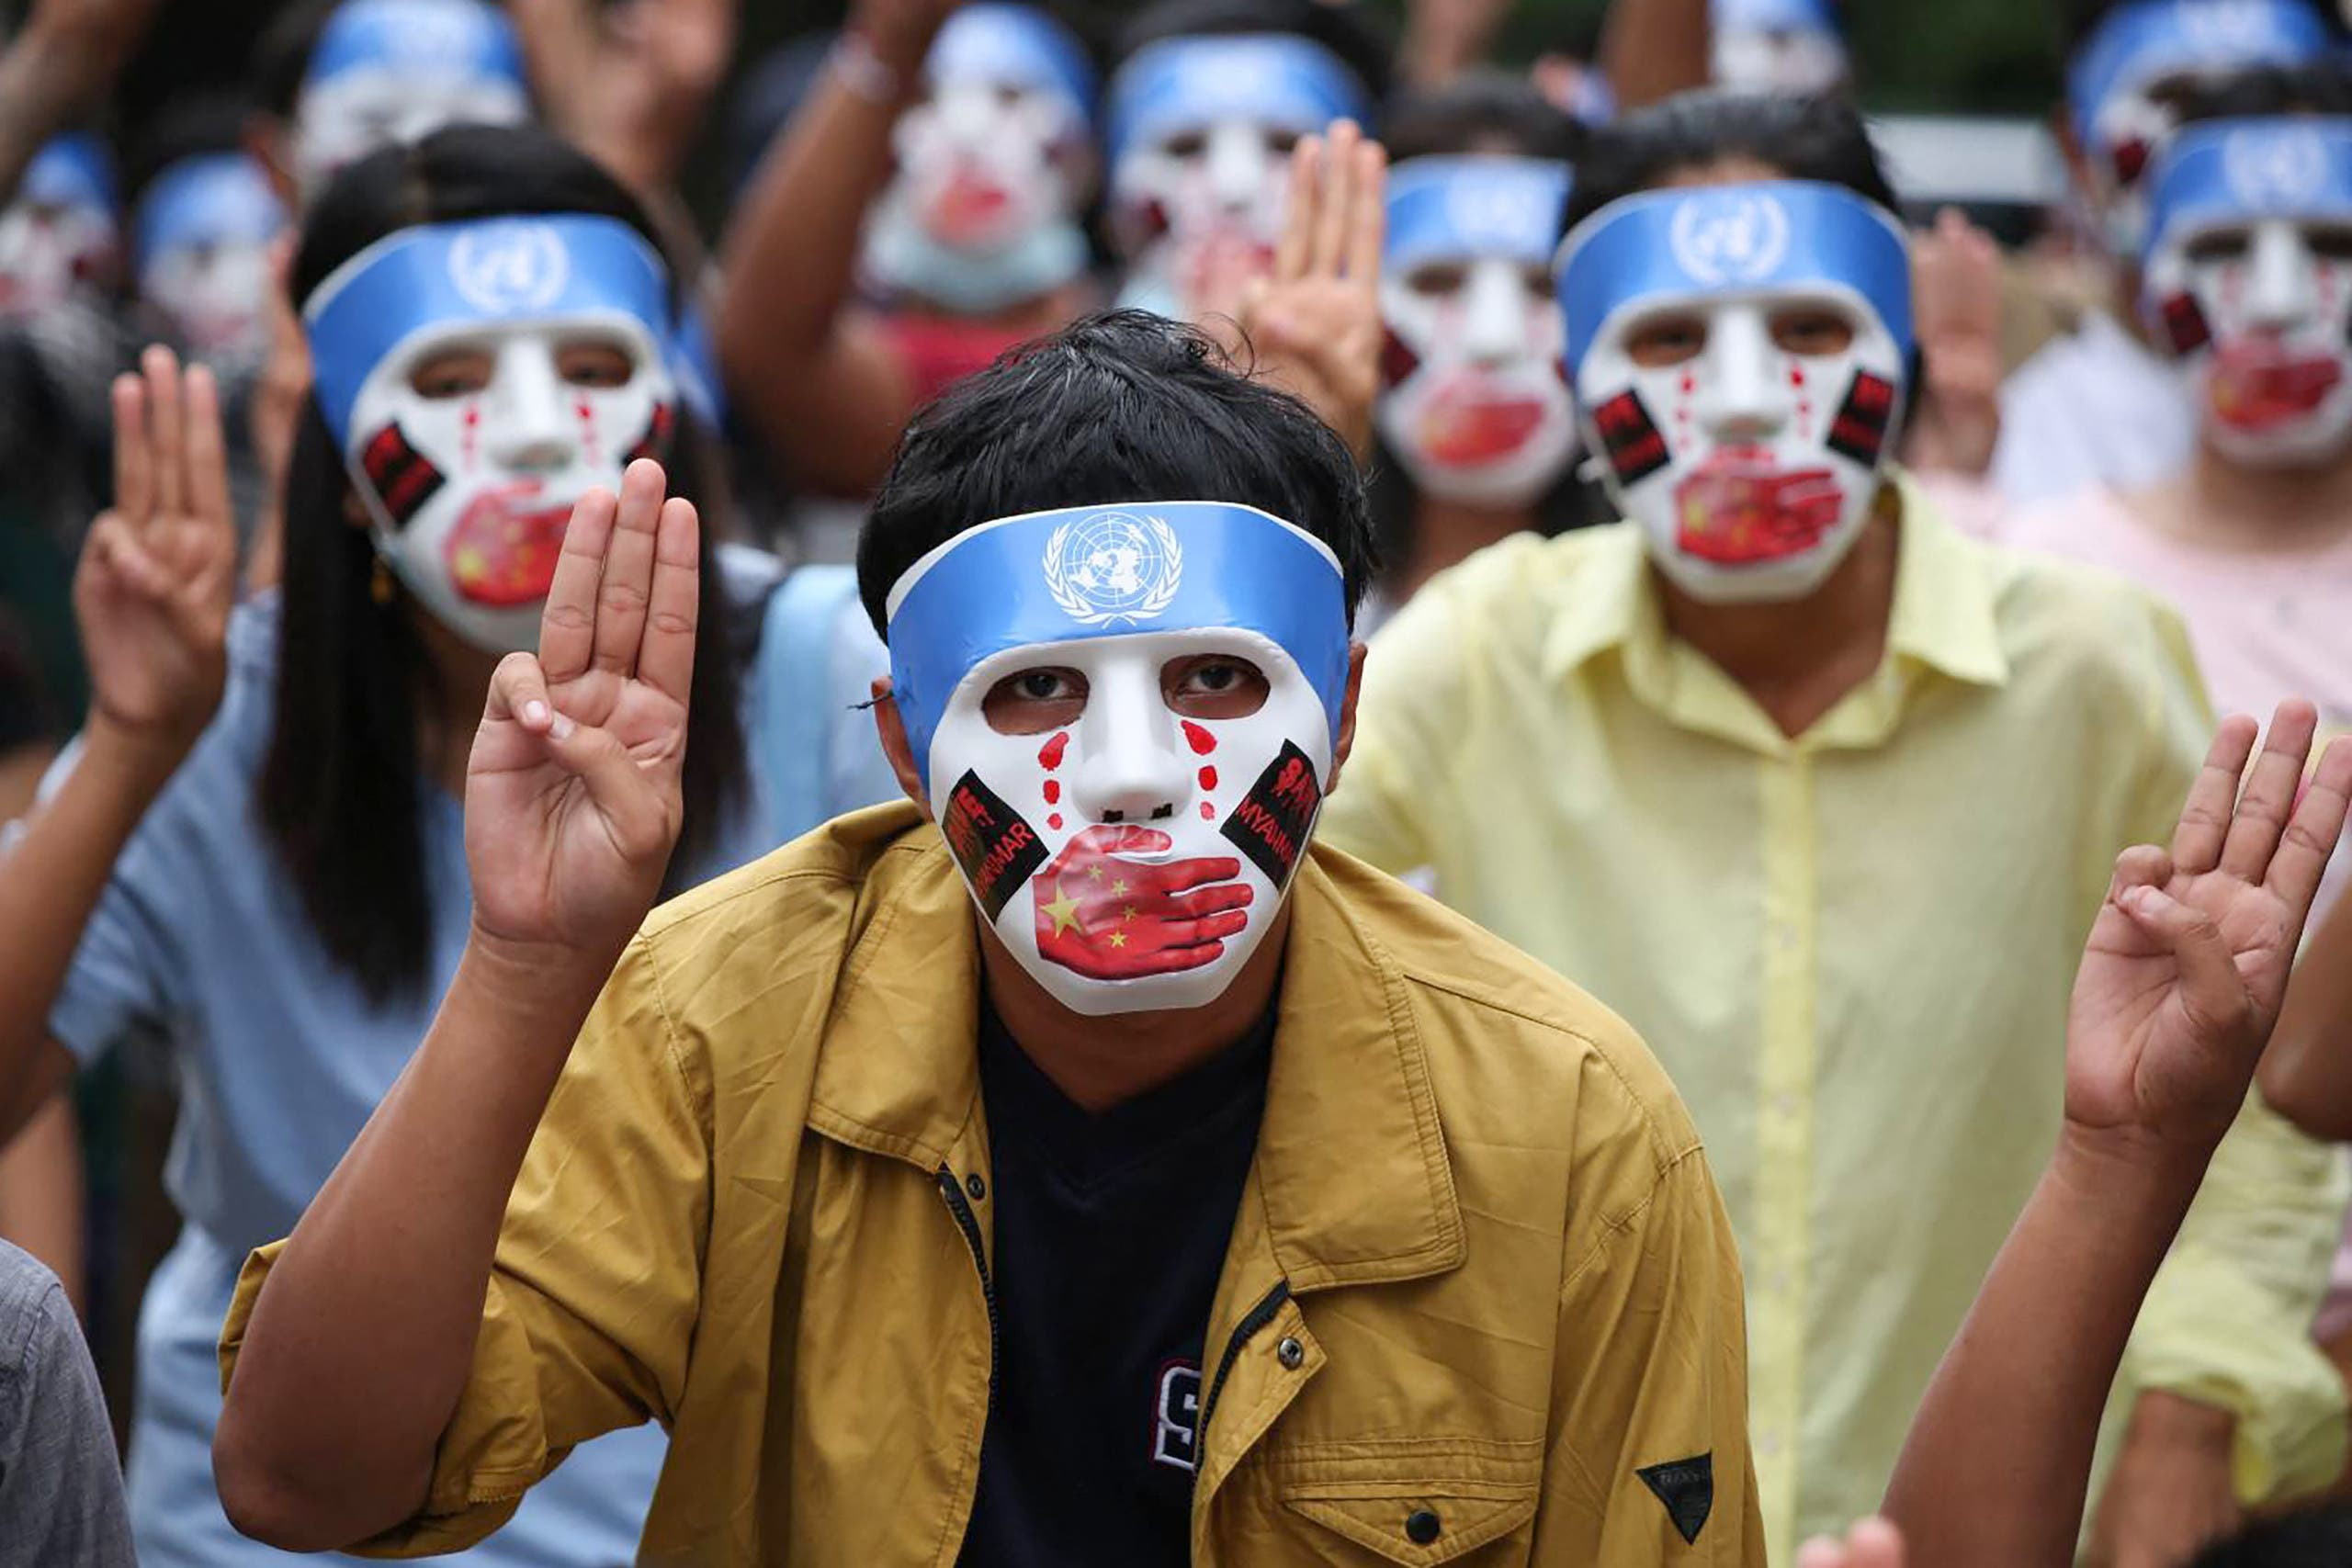 This handout from the Burma Associated Press (BAP) taken and received on April 4, 2021 shows protesters making the three-finger salute while wearing masks that express what they say is Chinese interference in the UN's handling of Myanmar affairs after the military coup in Yangon's Kamayut township. (File photo: AFP)